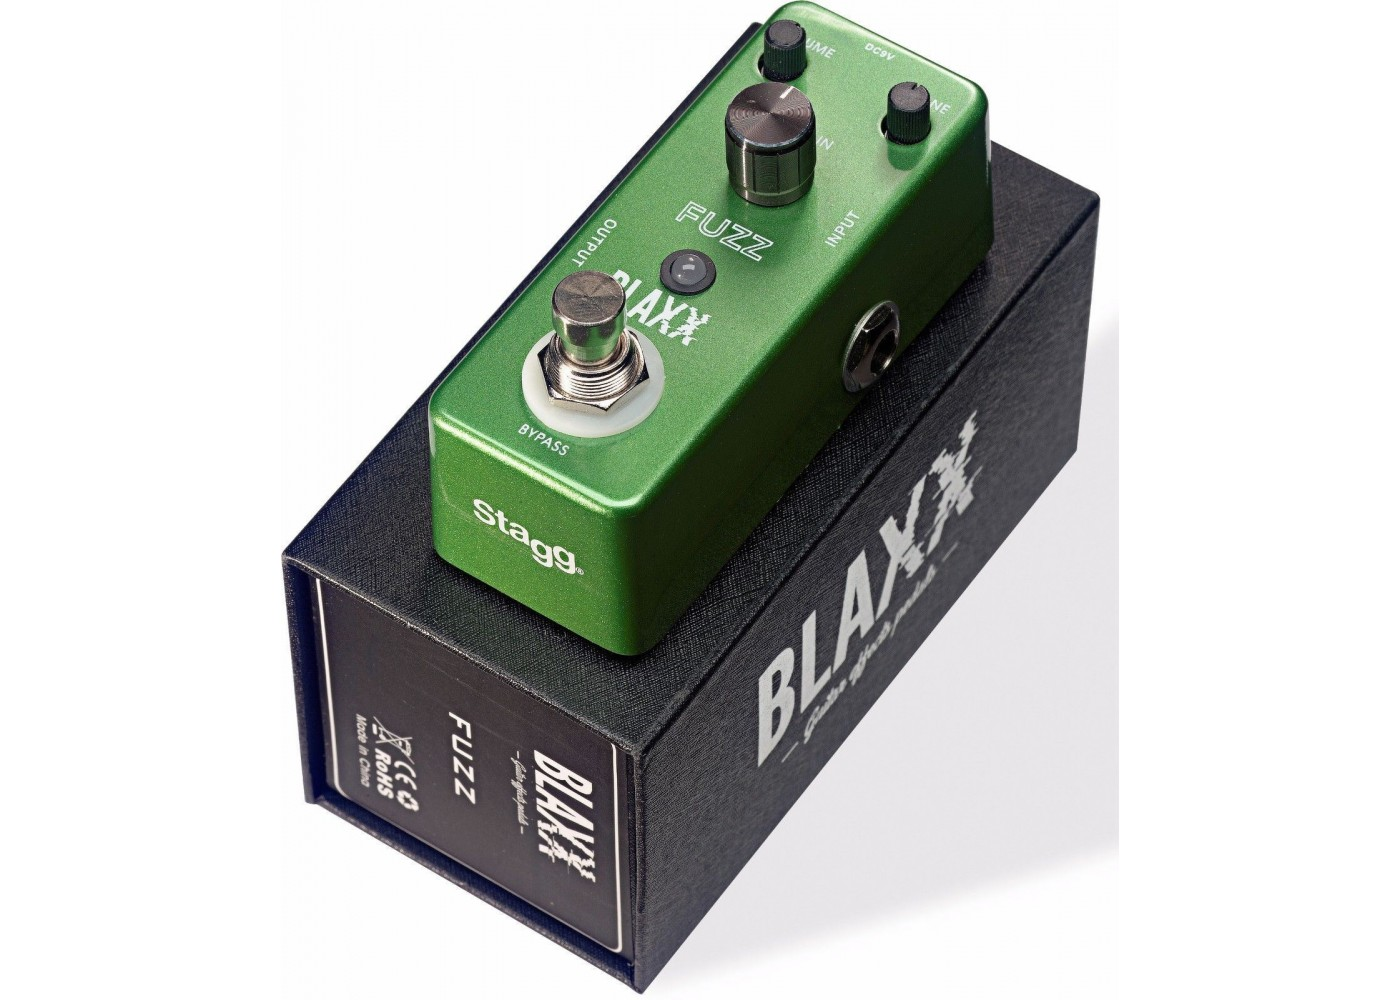 blaxx by stagg model bx fuzz heavy metal electric guitar effect pedal. Black Bedroom Furniture Sets. Home Design Ideas